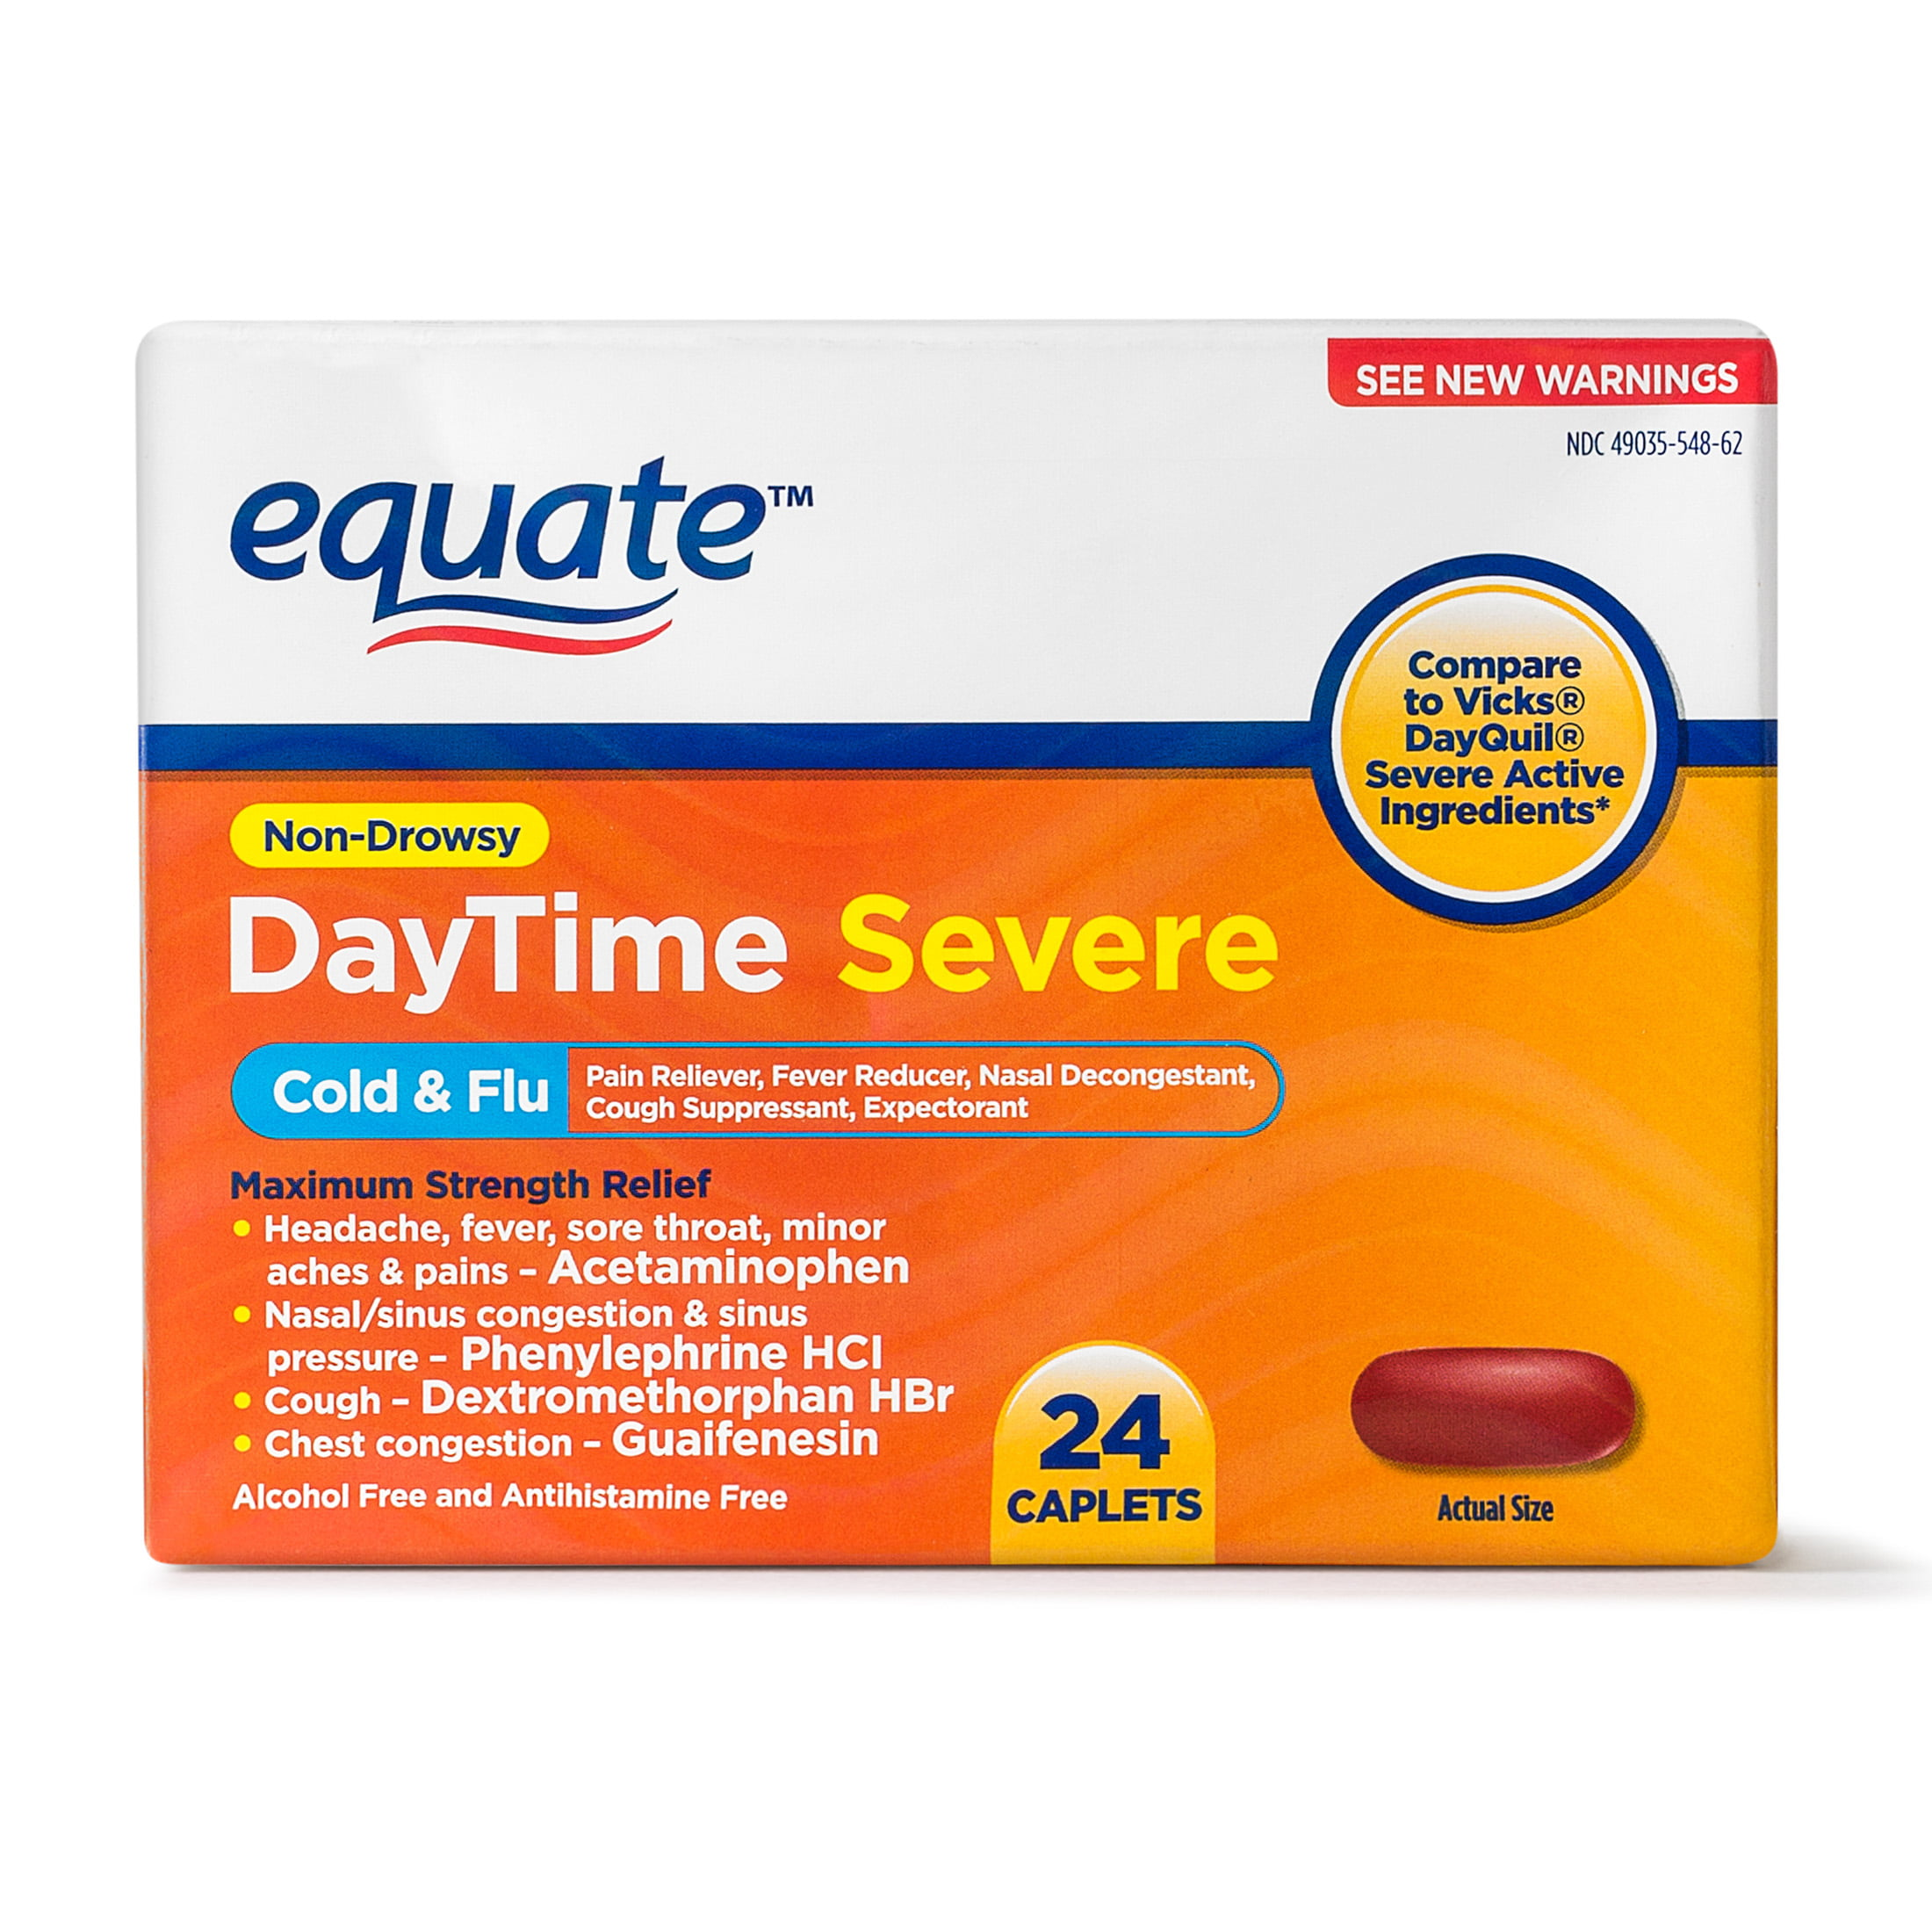 Equate Daytime Cold & Flu; Pain Reliever, Fever Reducer, Nasal Decongestant, Cough Suppressant, Expectorant 24 Count